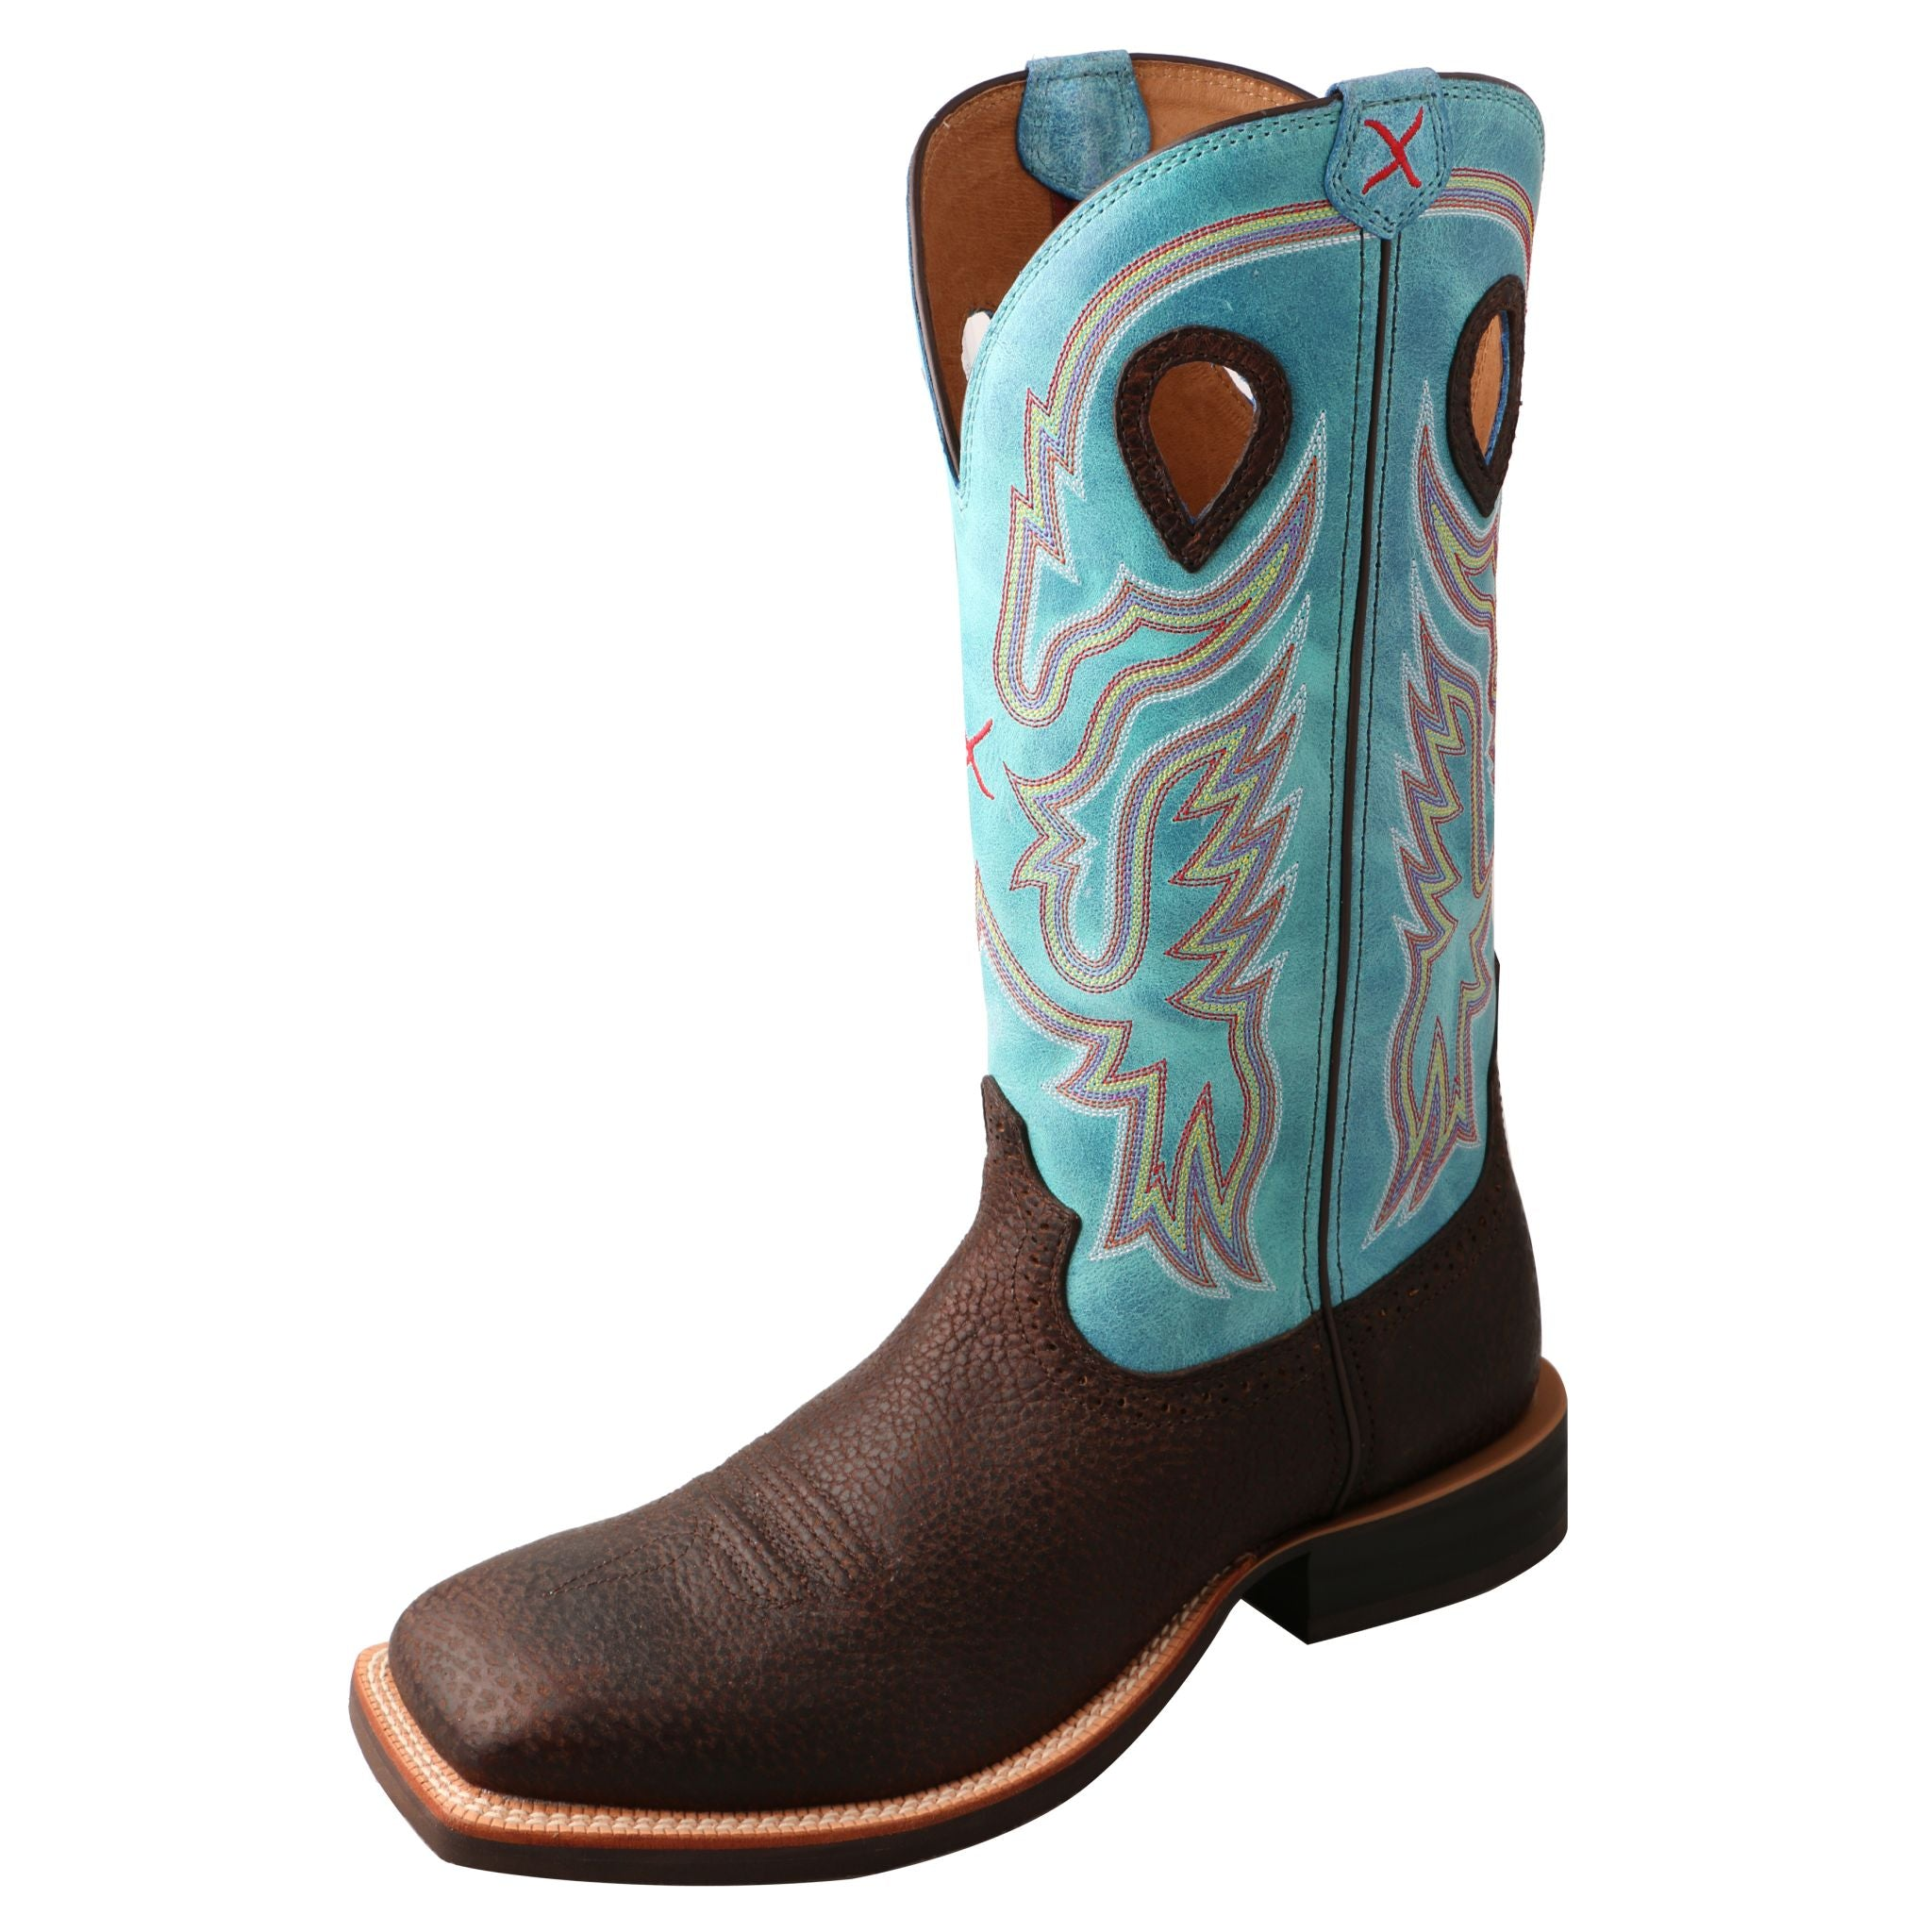 Ruff Stock - Distressed Brown / Blue